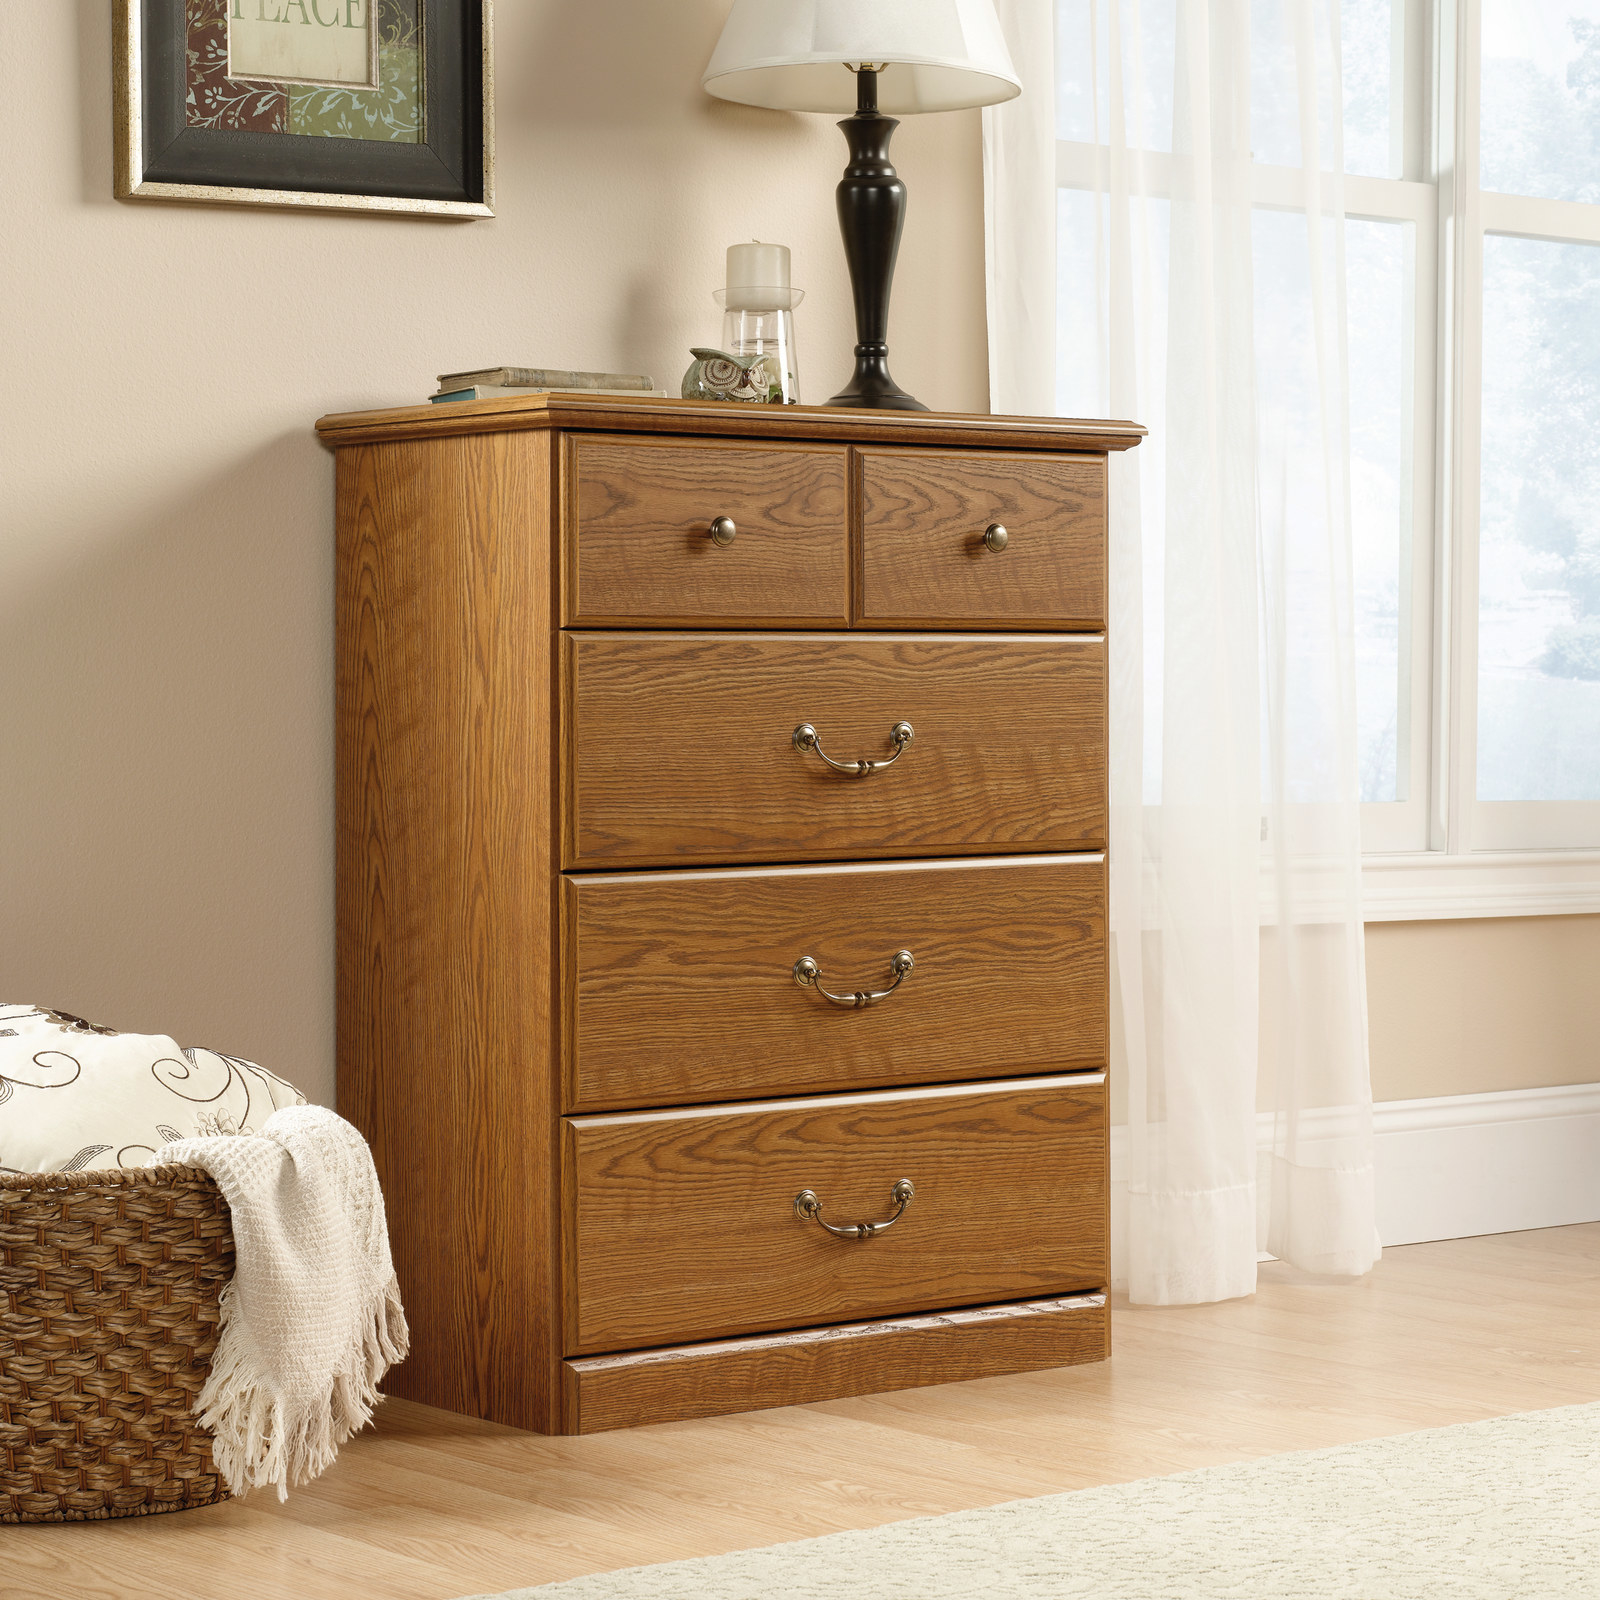 """Promising review: """"Hey... it's a chest of drawers, right? Yes it is, but I've put a lot of DIY products together over the years and as for 'strength by design' this product tops everything else I've built over the years. Exterior finish is very nice and I would recommend this to anyone looking for an affordable, well designed product, that looks as good as it's built. Oh heck, while you're at it buy two, you won't be disappointed!"""" —JimPrice: $149.99"""